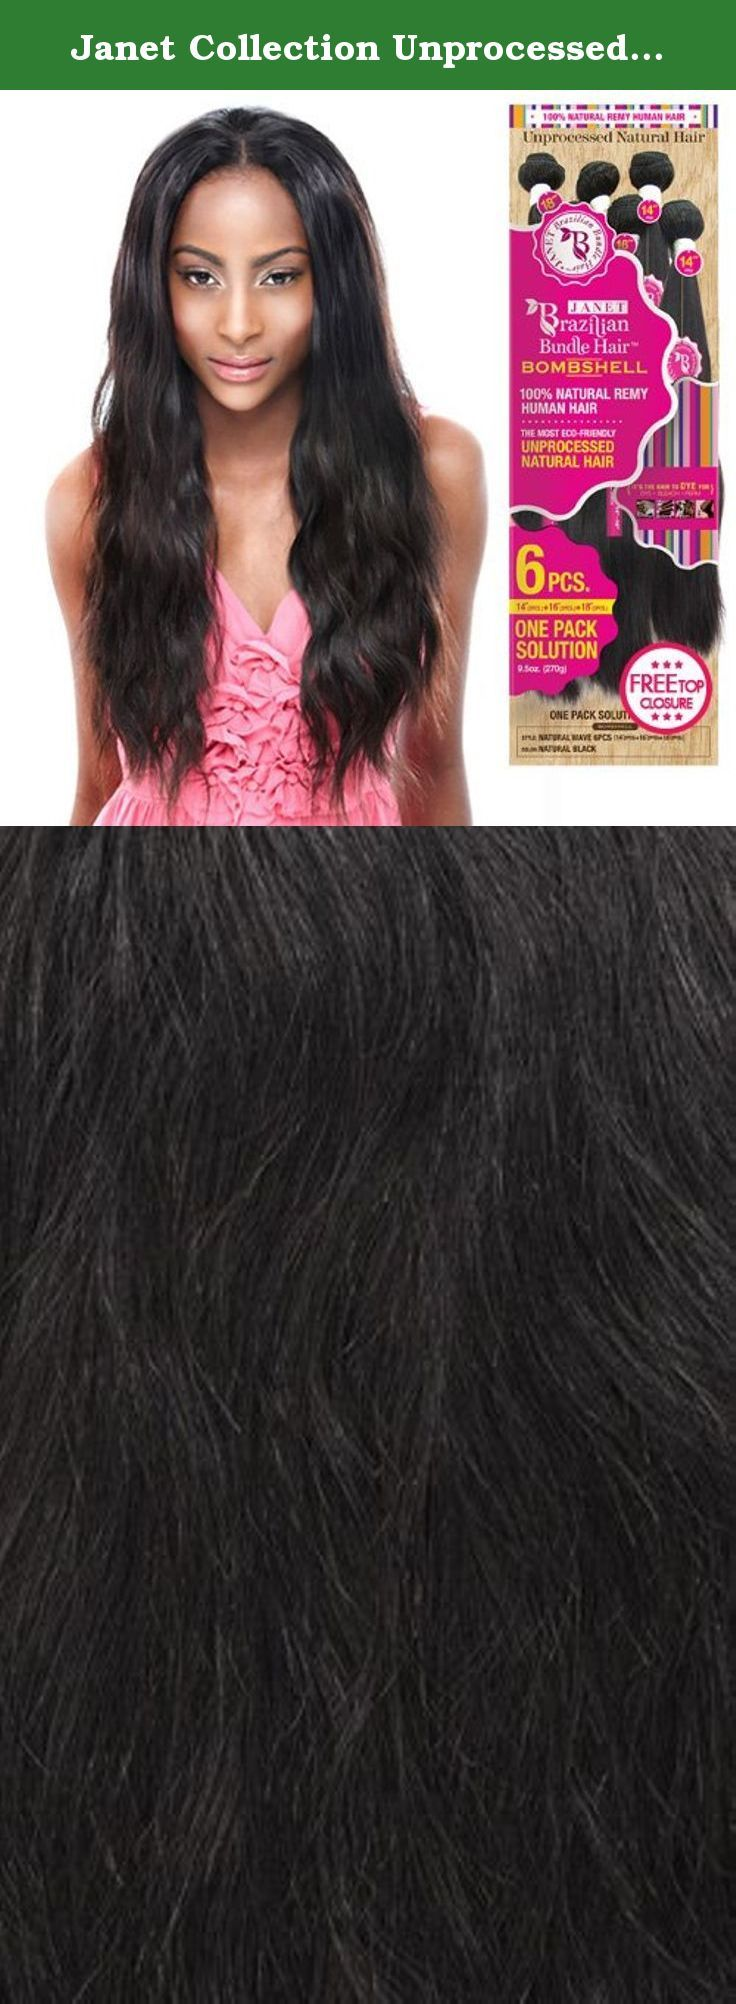 Janet Collection Unprocessed Brazilian Virgin Remy Human Hair Weave